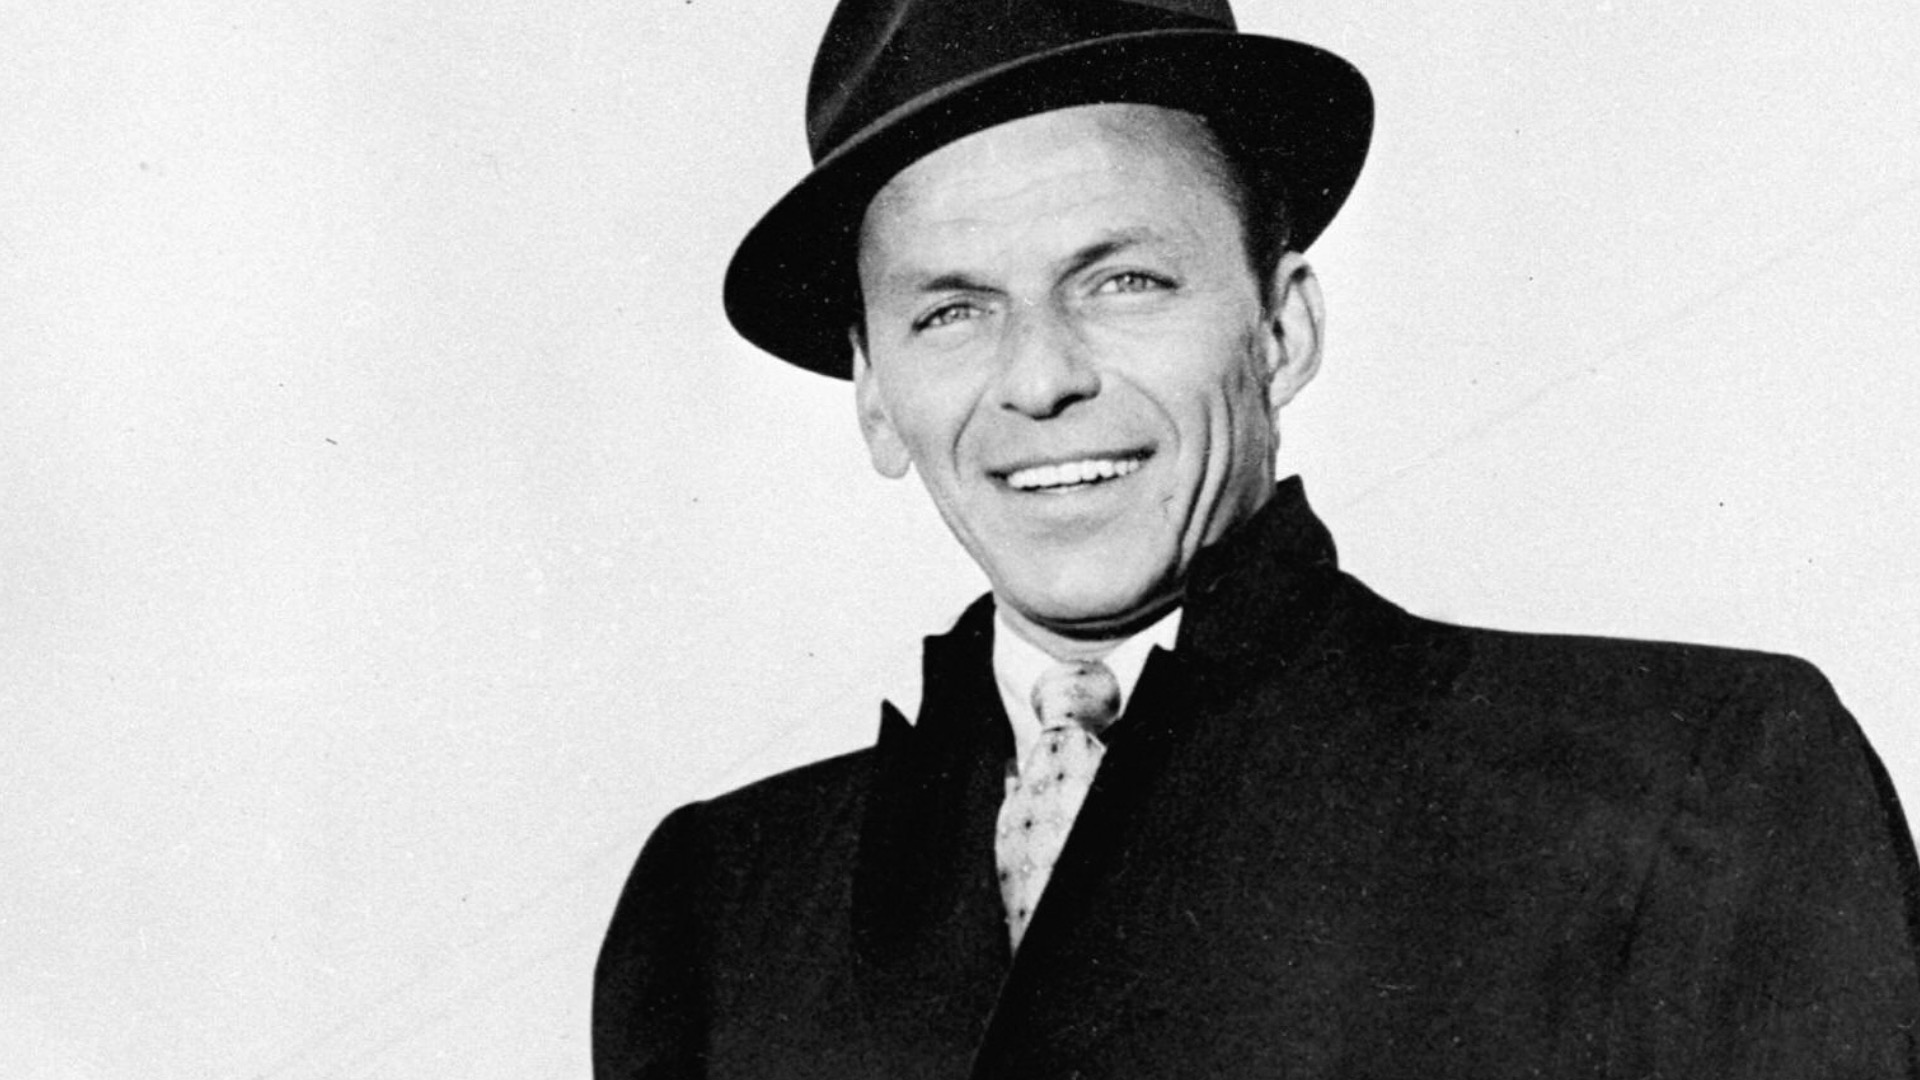 For what would have been Frank Sinatra's 100th birthday, USA TODAY takes a look at 5 things to know about the music icon's life.